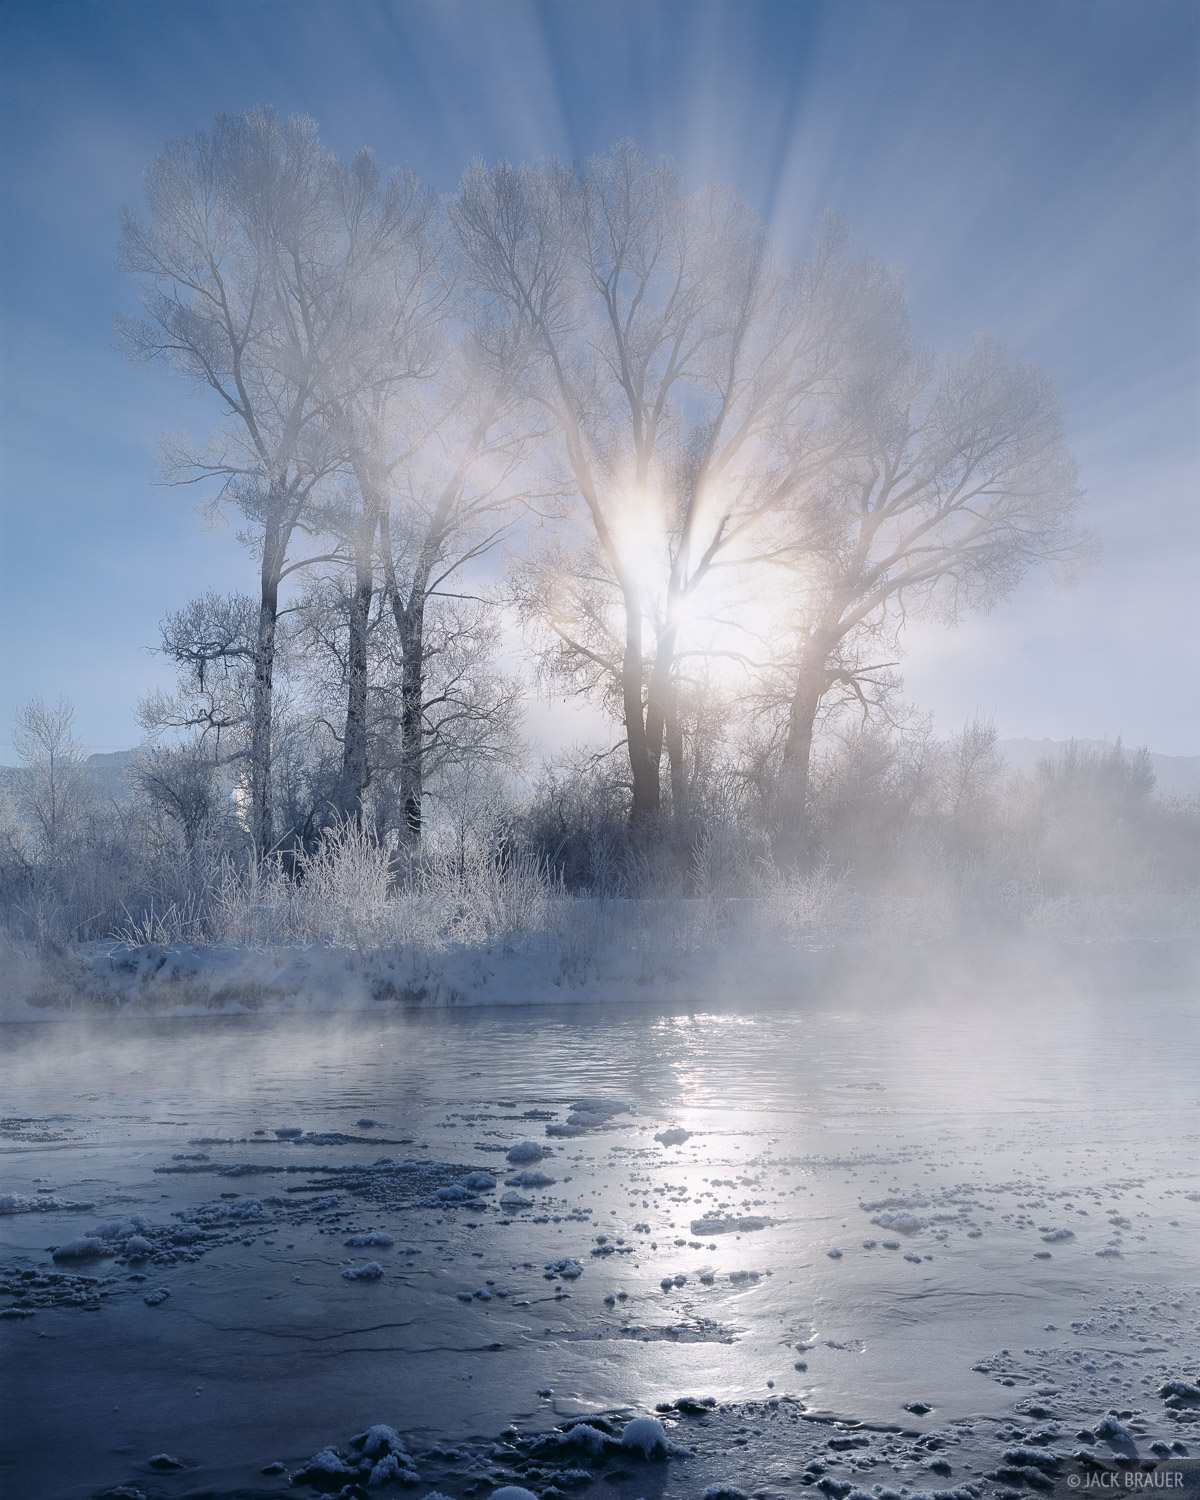 Uncompahgre River, winter sunrise, Ridgway, Colorado, photo